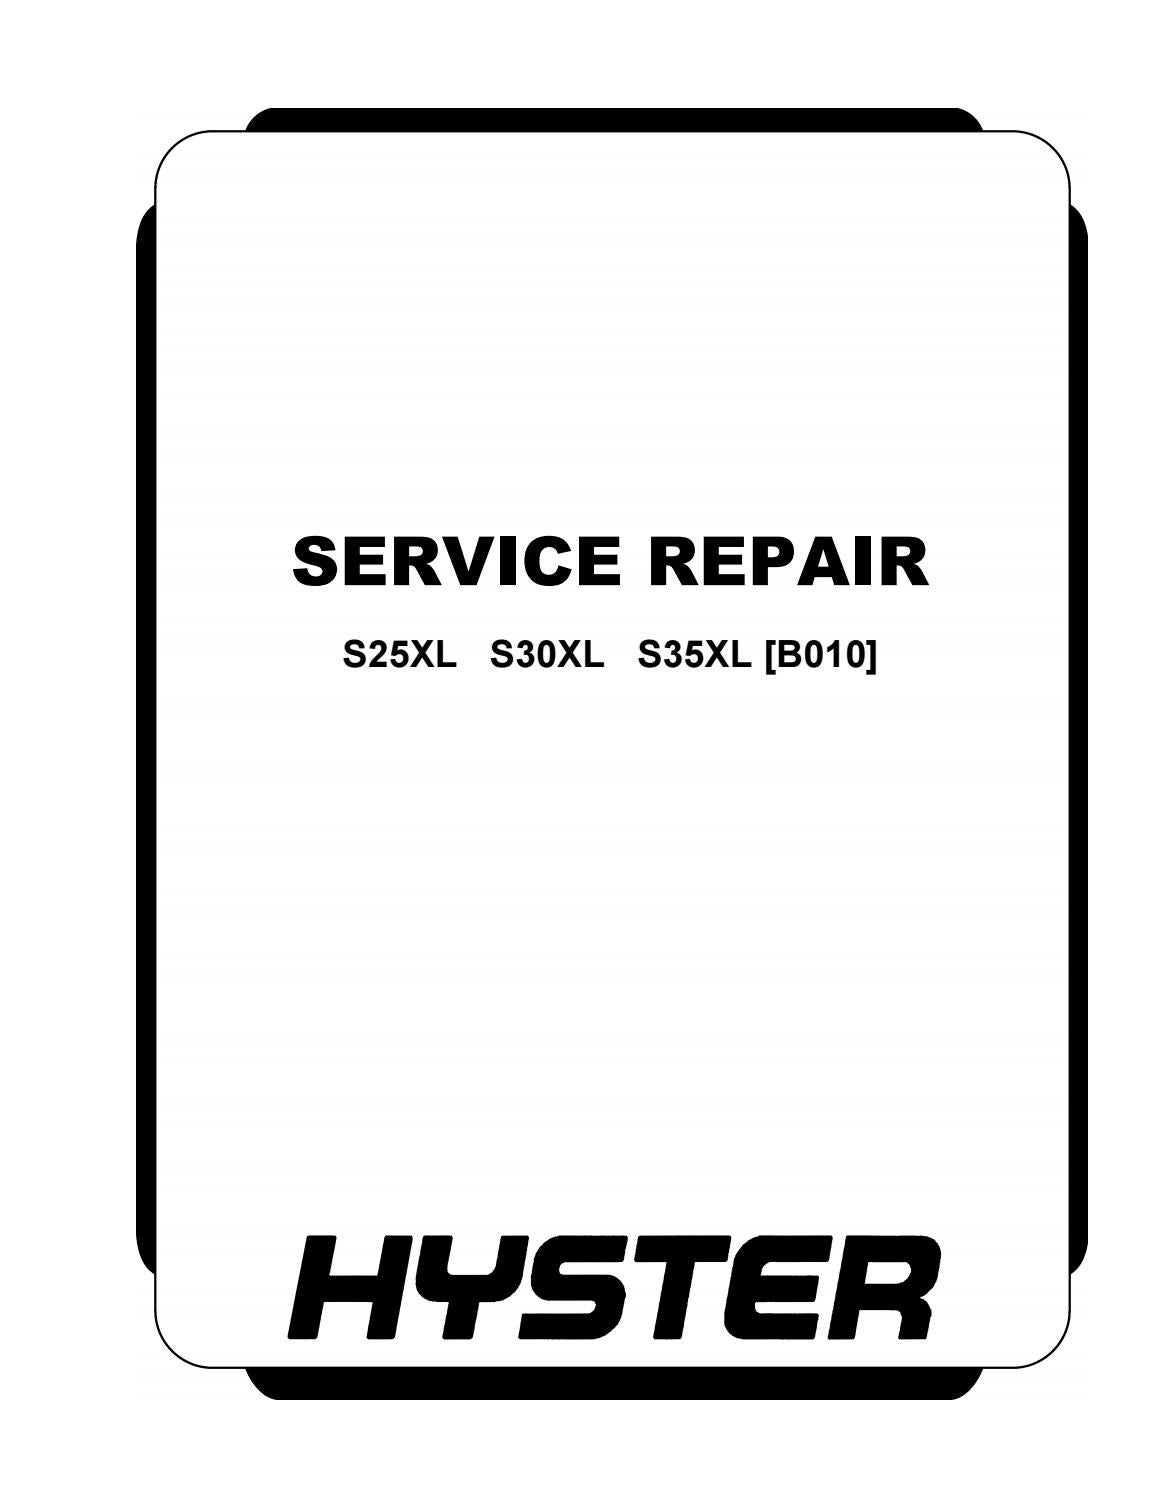 Hyster B010 (S30XL) Forklift Service Repair Manual by